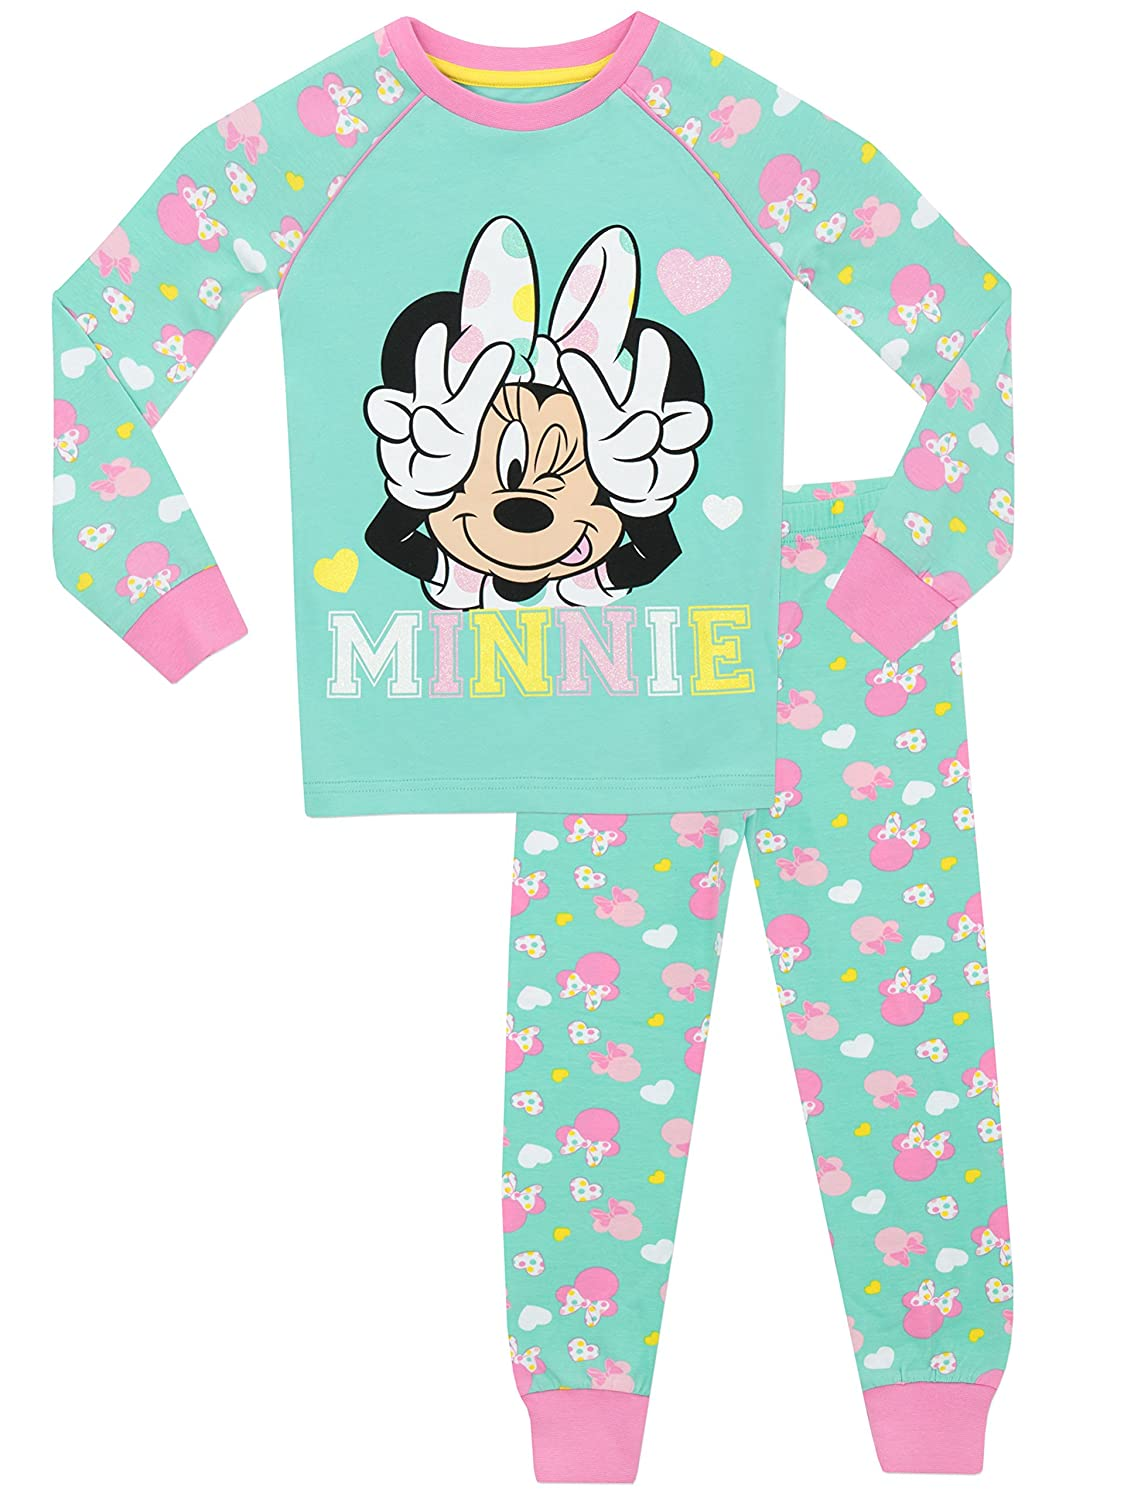 ffd570e451 Pijamas enteros nombre en ingles. Disney Minnie Mouse - Pijama para niñas -  Minnie Mouse - Ajust Ceñido  Amazon.